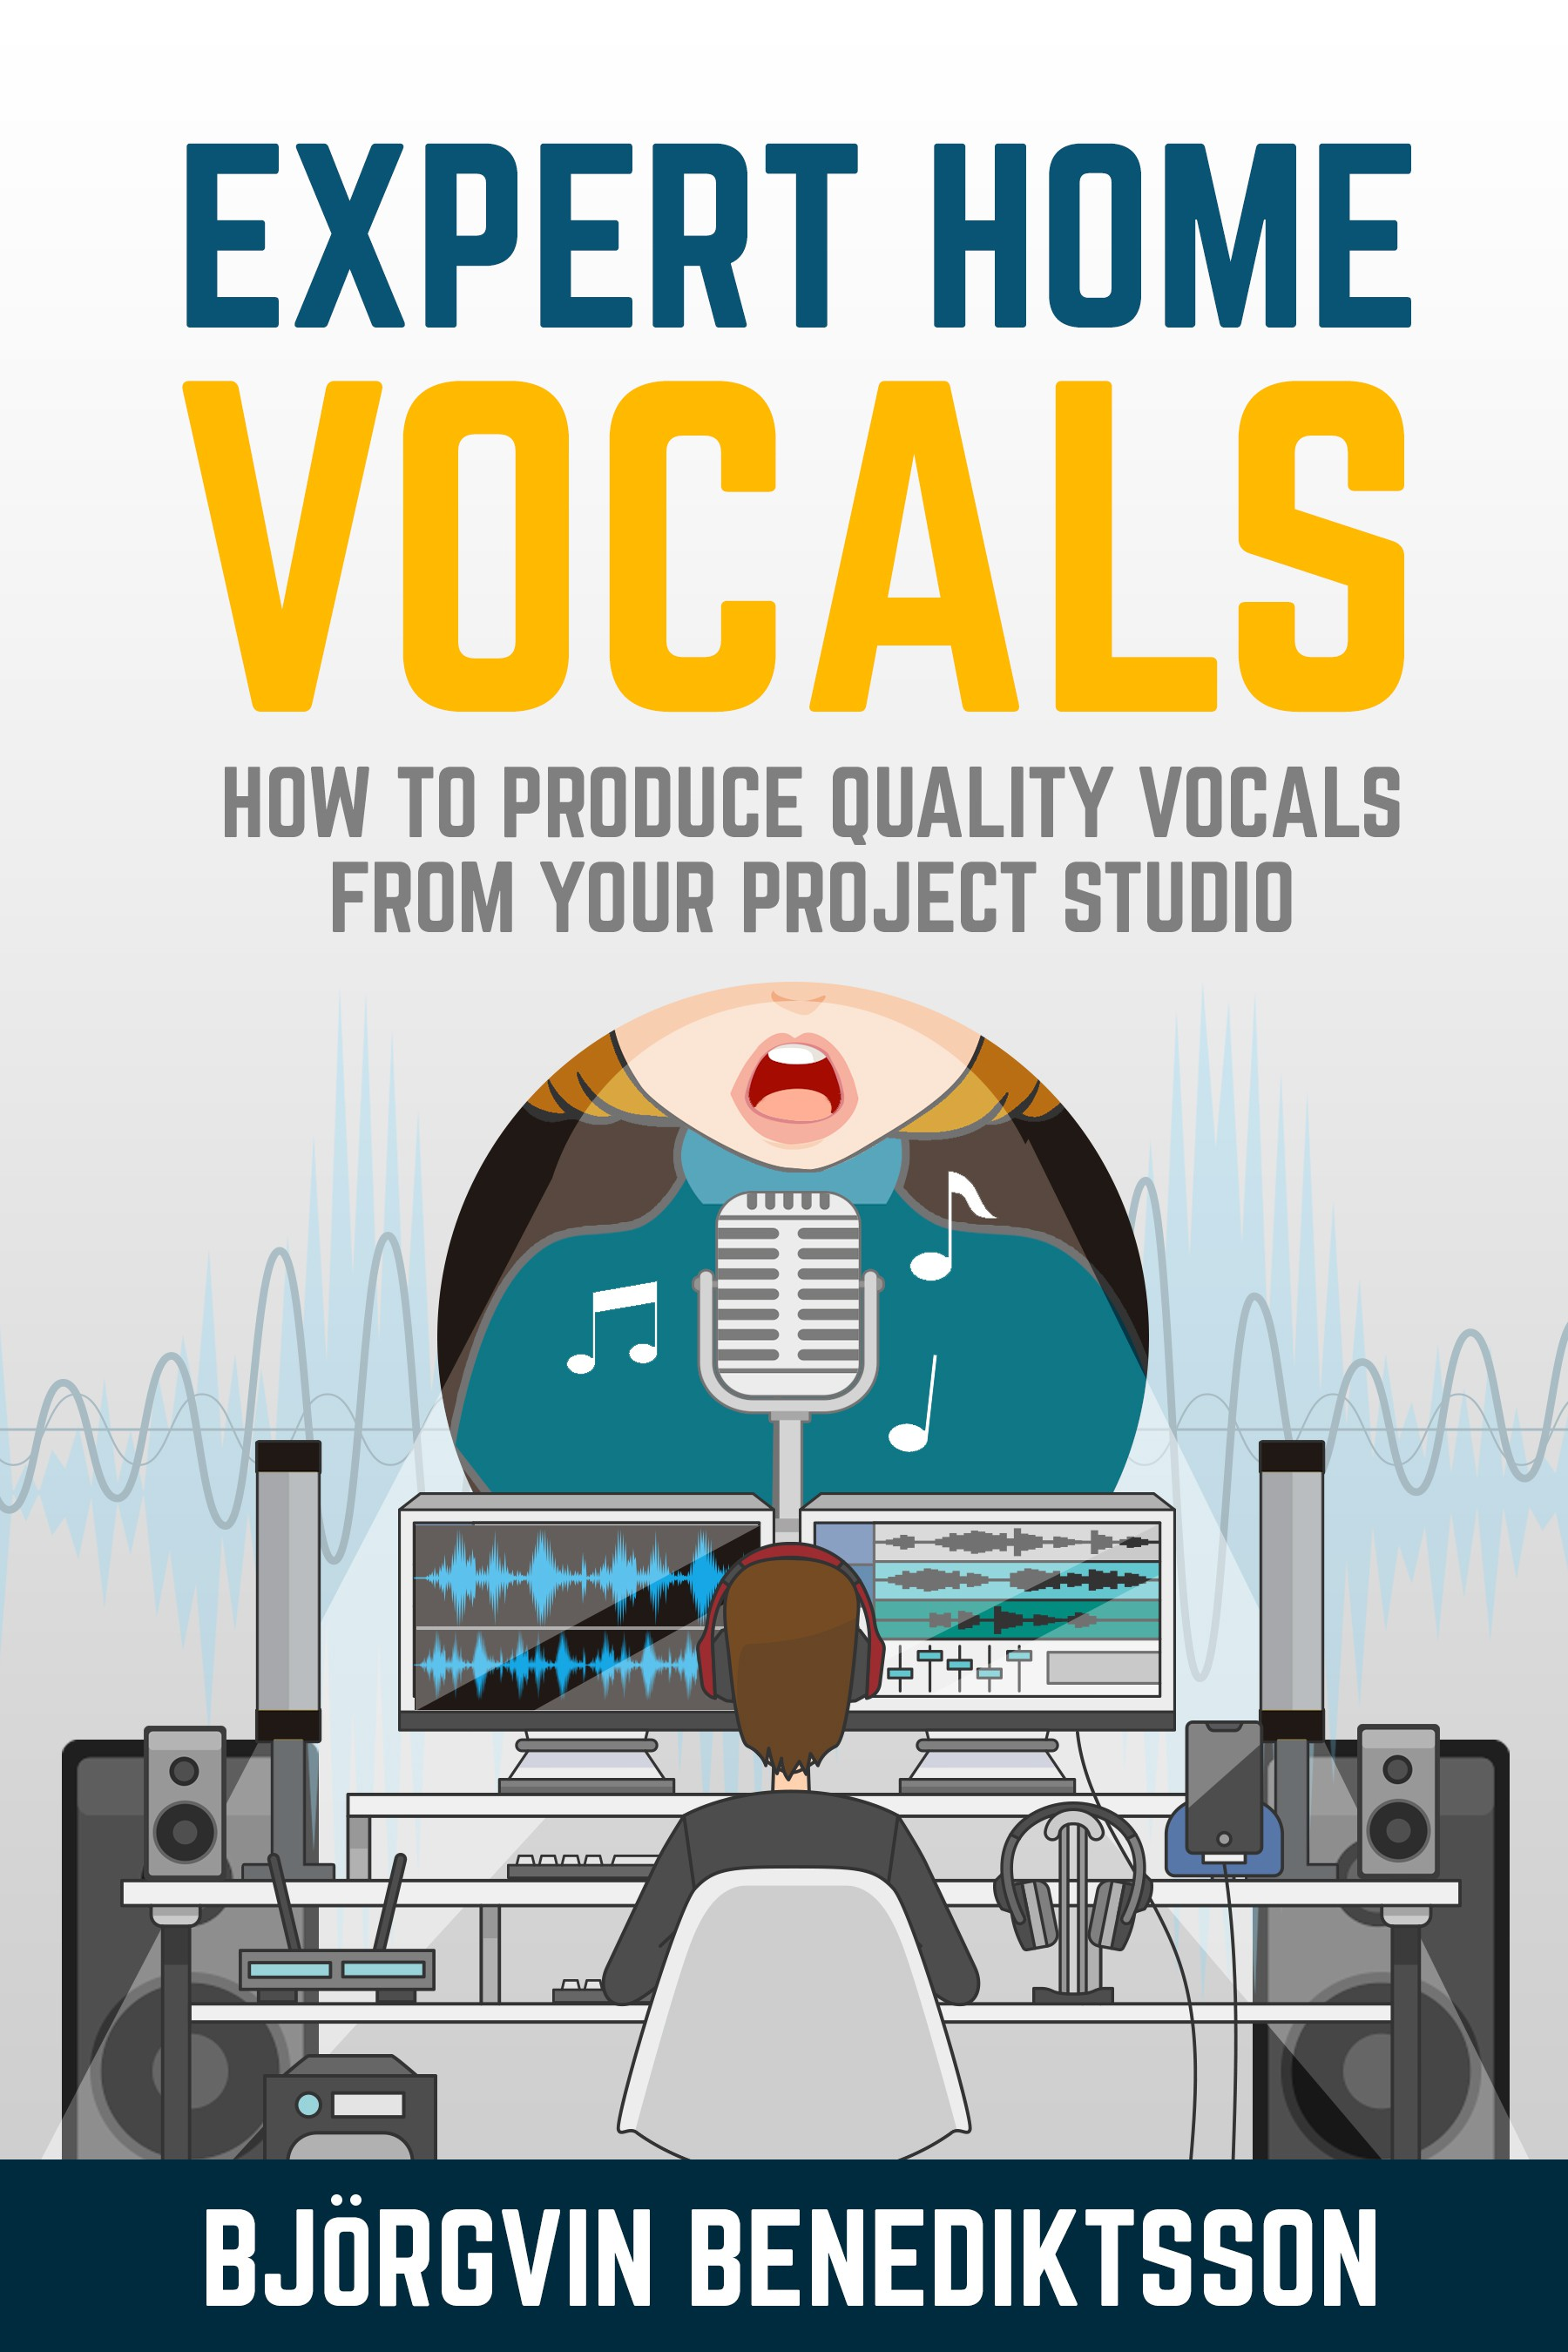 Design a cool and fun cover for Expert Home Vocals, a music production ebook for home studios